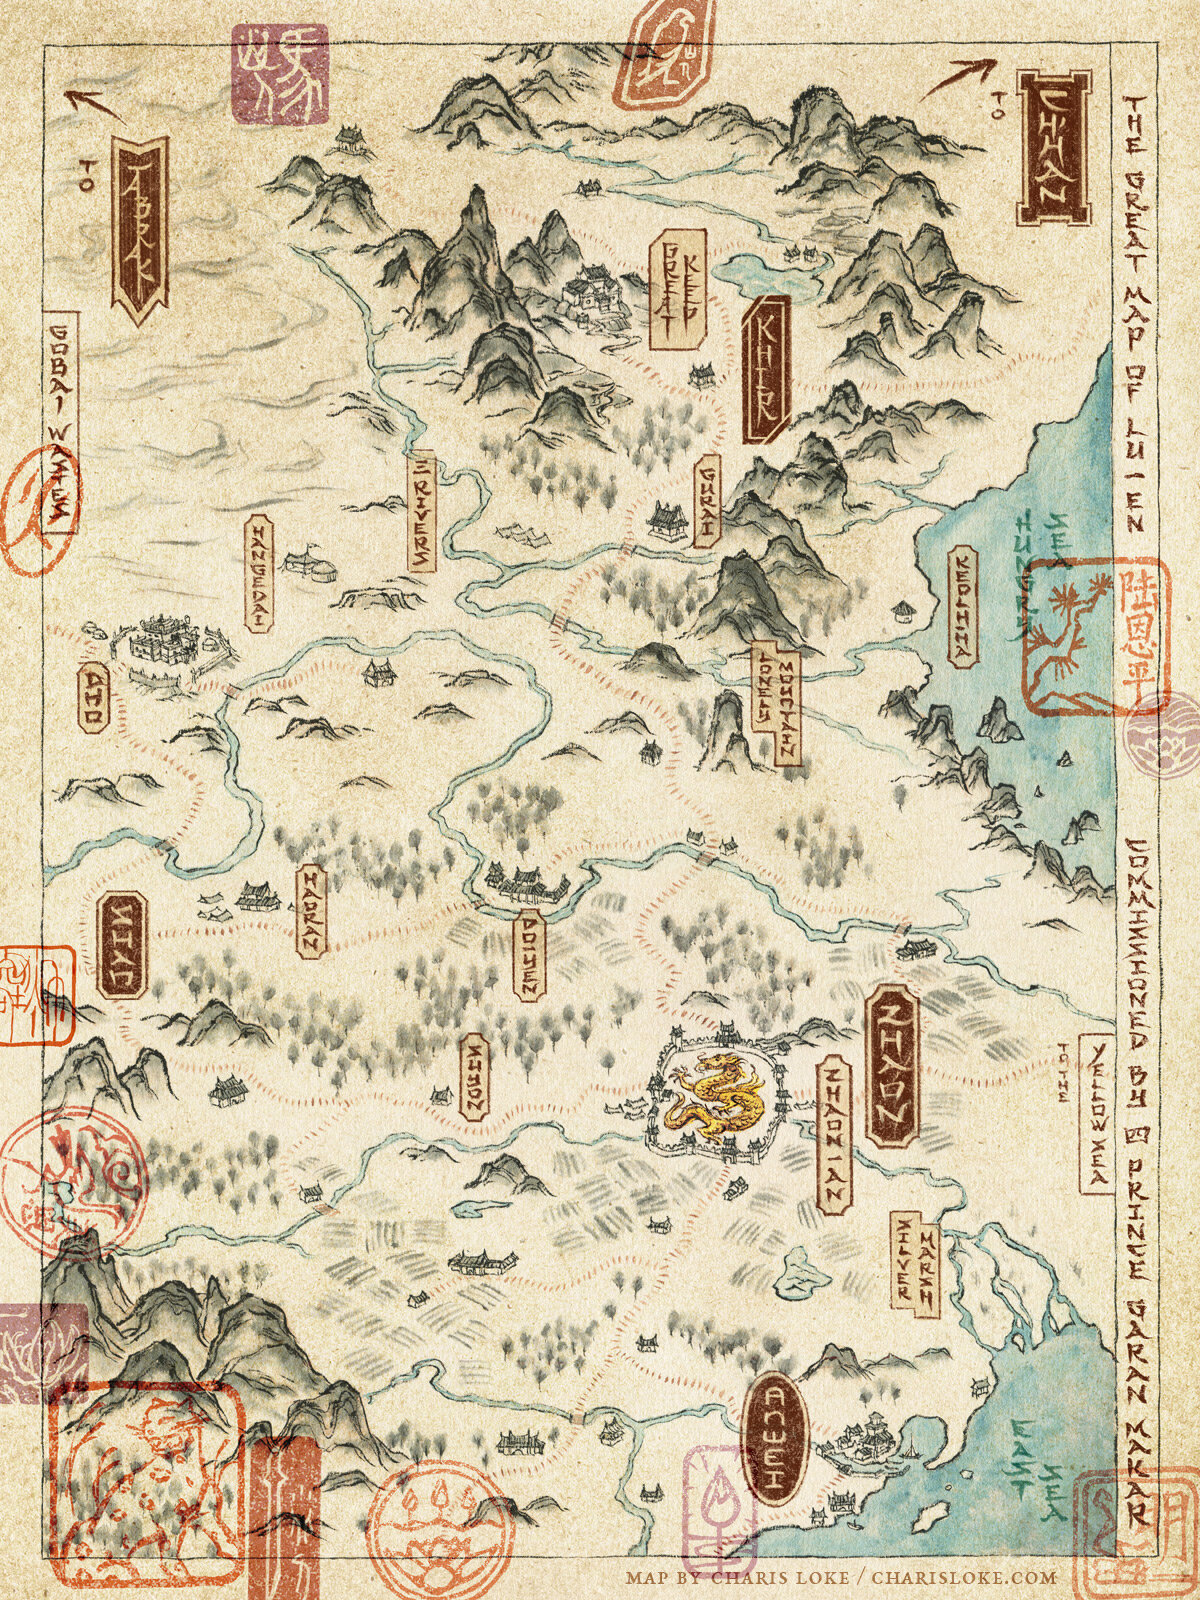 SWIFTLY, AS A KNIFE: map illustration for 'The Throne of the Five Winds' by S. C. Emmett from Orbit Books.